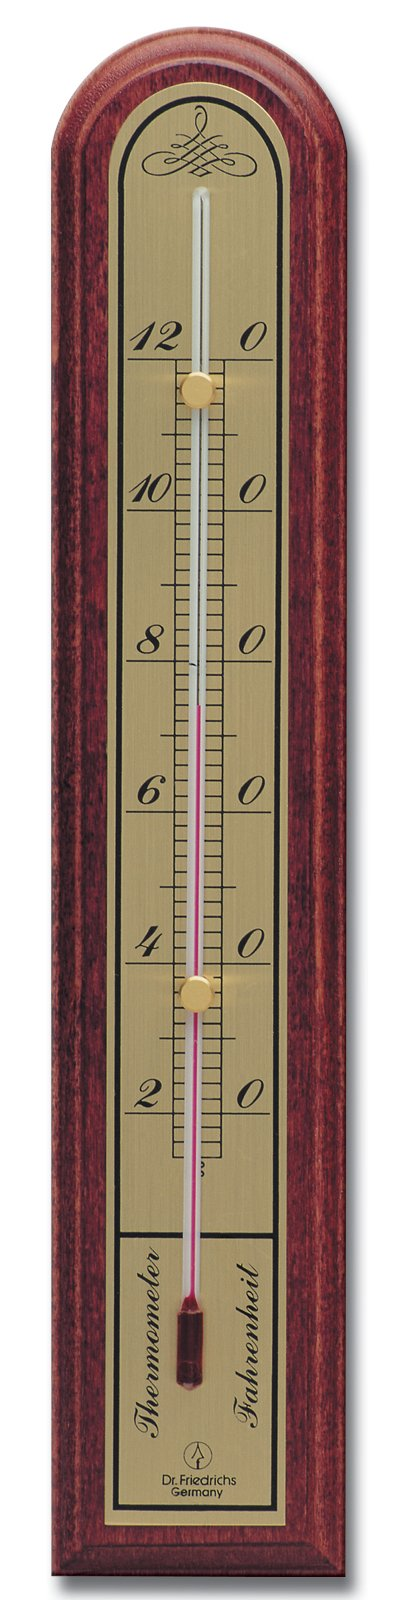 Analog Indoor Wall Thermometer Solid Oak Wood with Brass Scale 10 inch (Mahogany Finish)